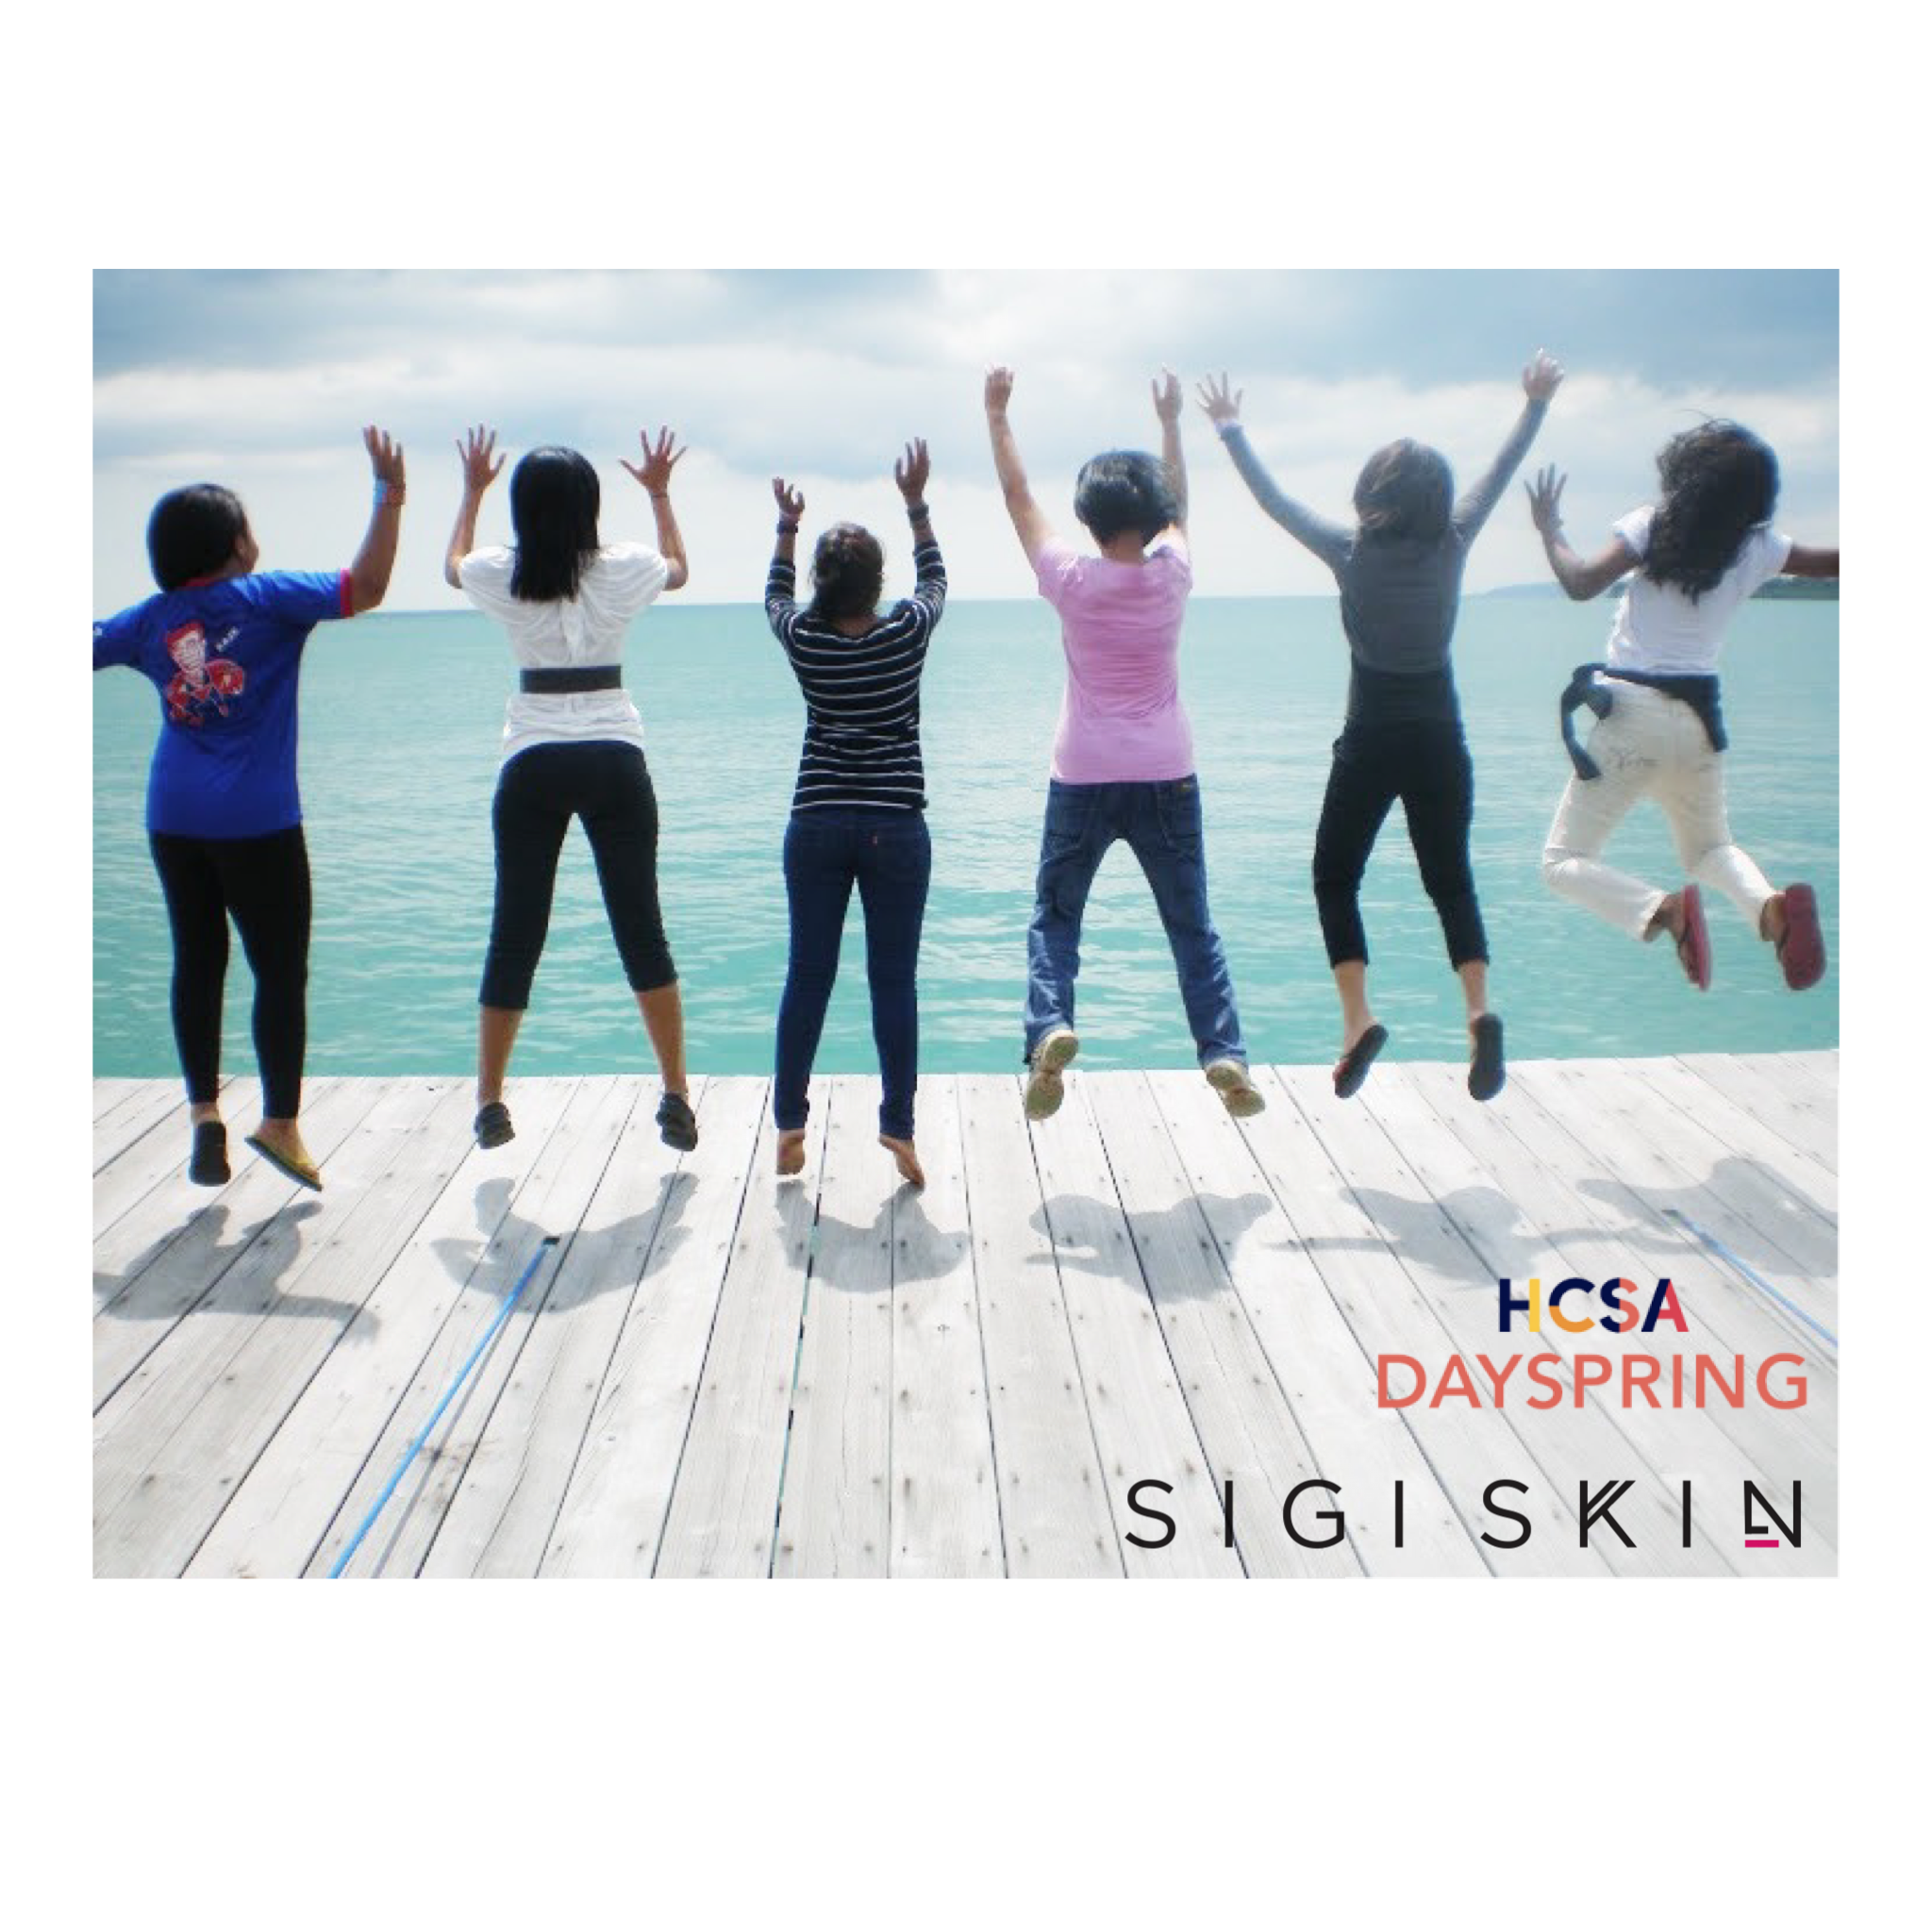 Sigi Skin collaborates with HCSA Dayspring to celebrate International Women's Day